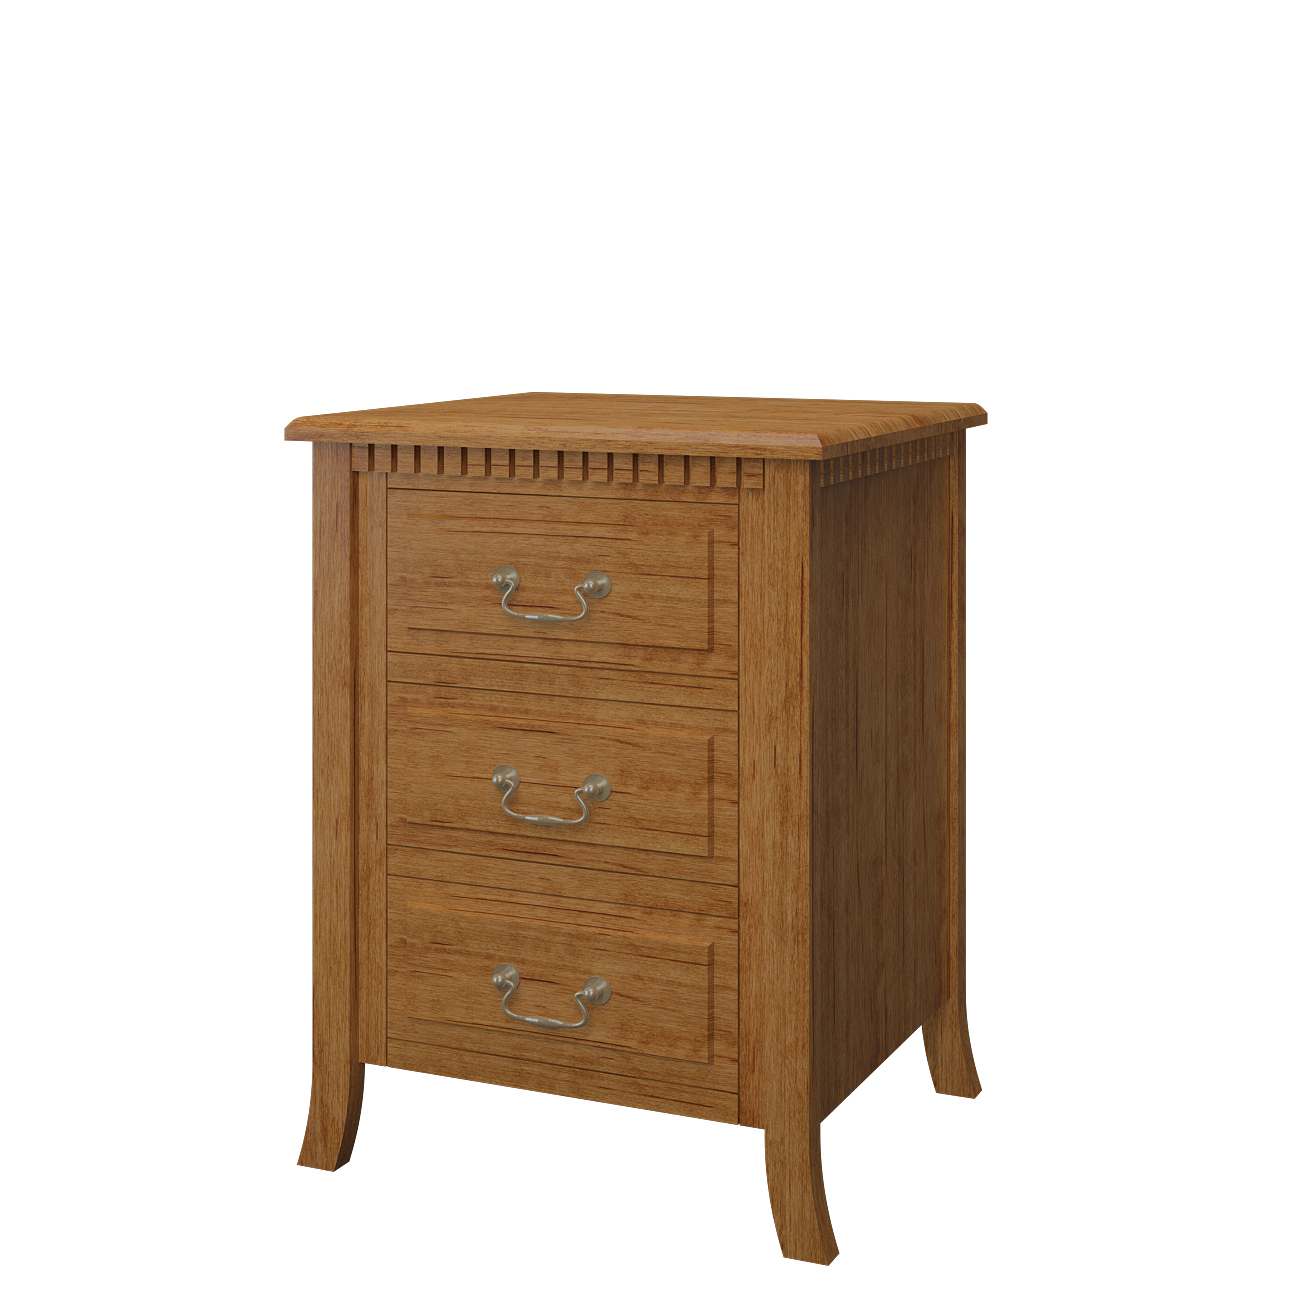 Lisbon nightstand with drawers solid wood nightstand in for Wood nightstand with drawers